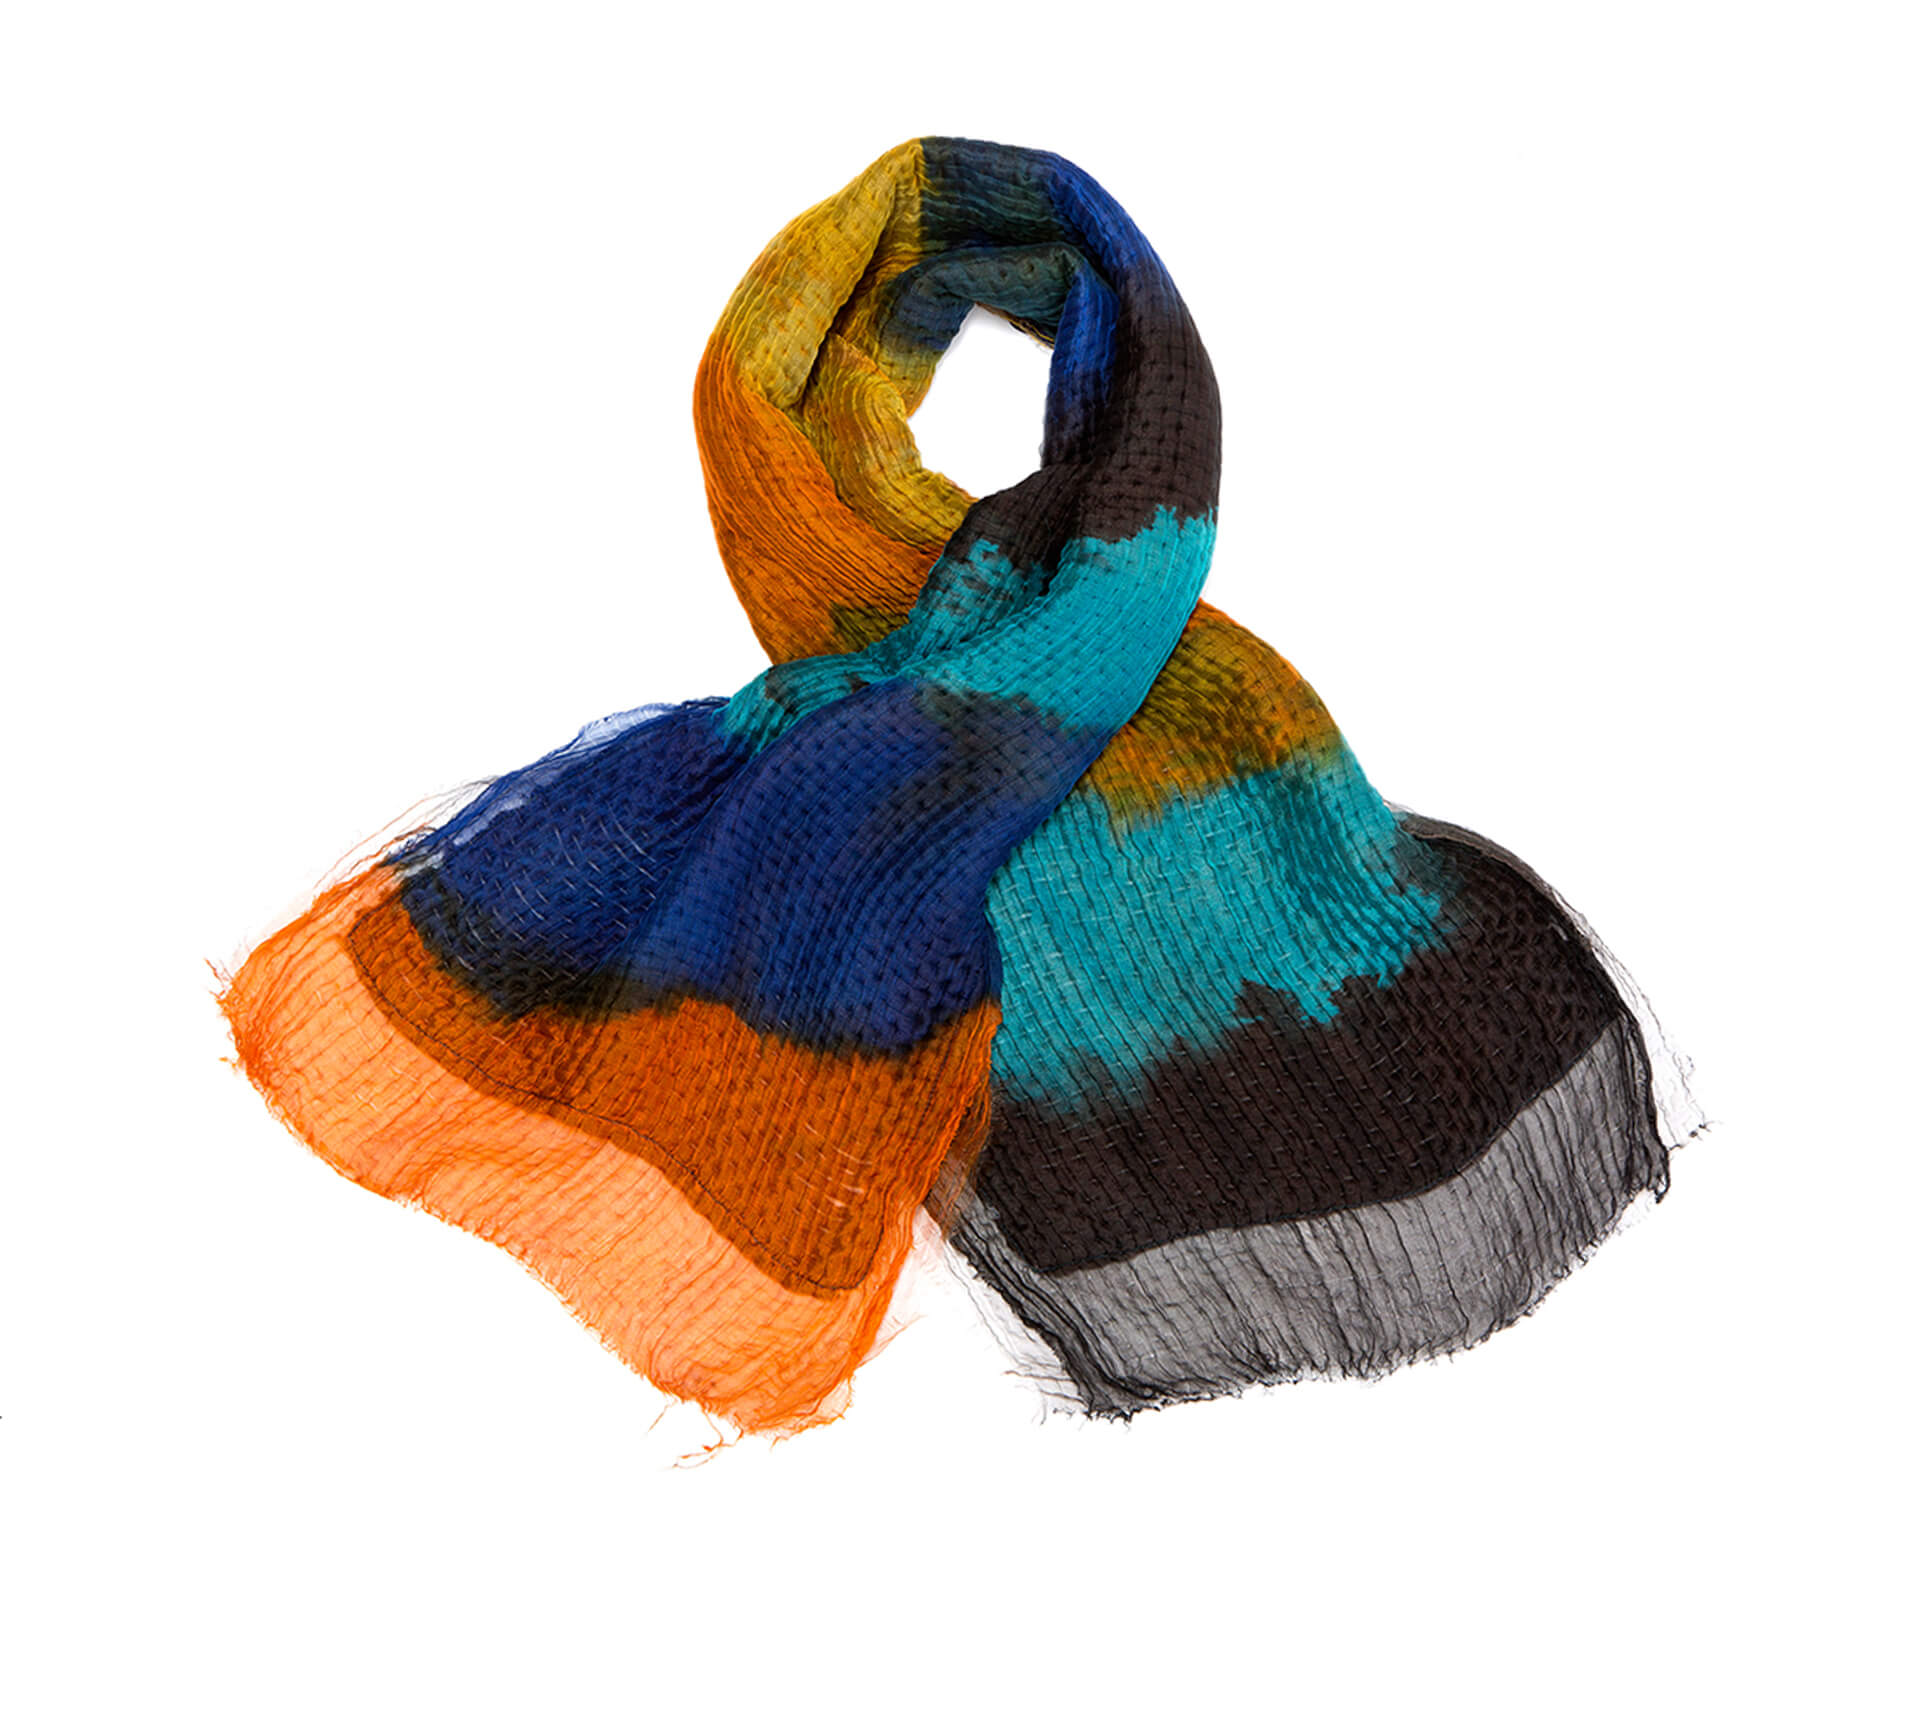 Hand dyed scarf, Silk and wool shawl, Colorful handmade wrap scarf, Orange, Blue, Black, Tourquoise, Original by Dikla Levsky